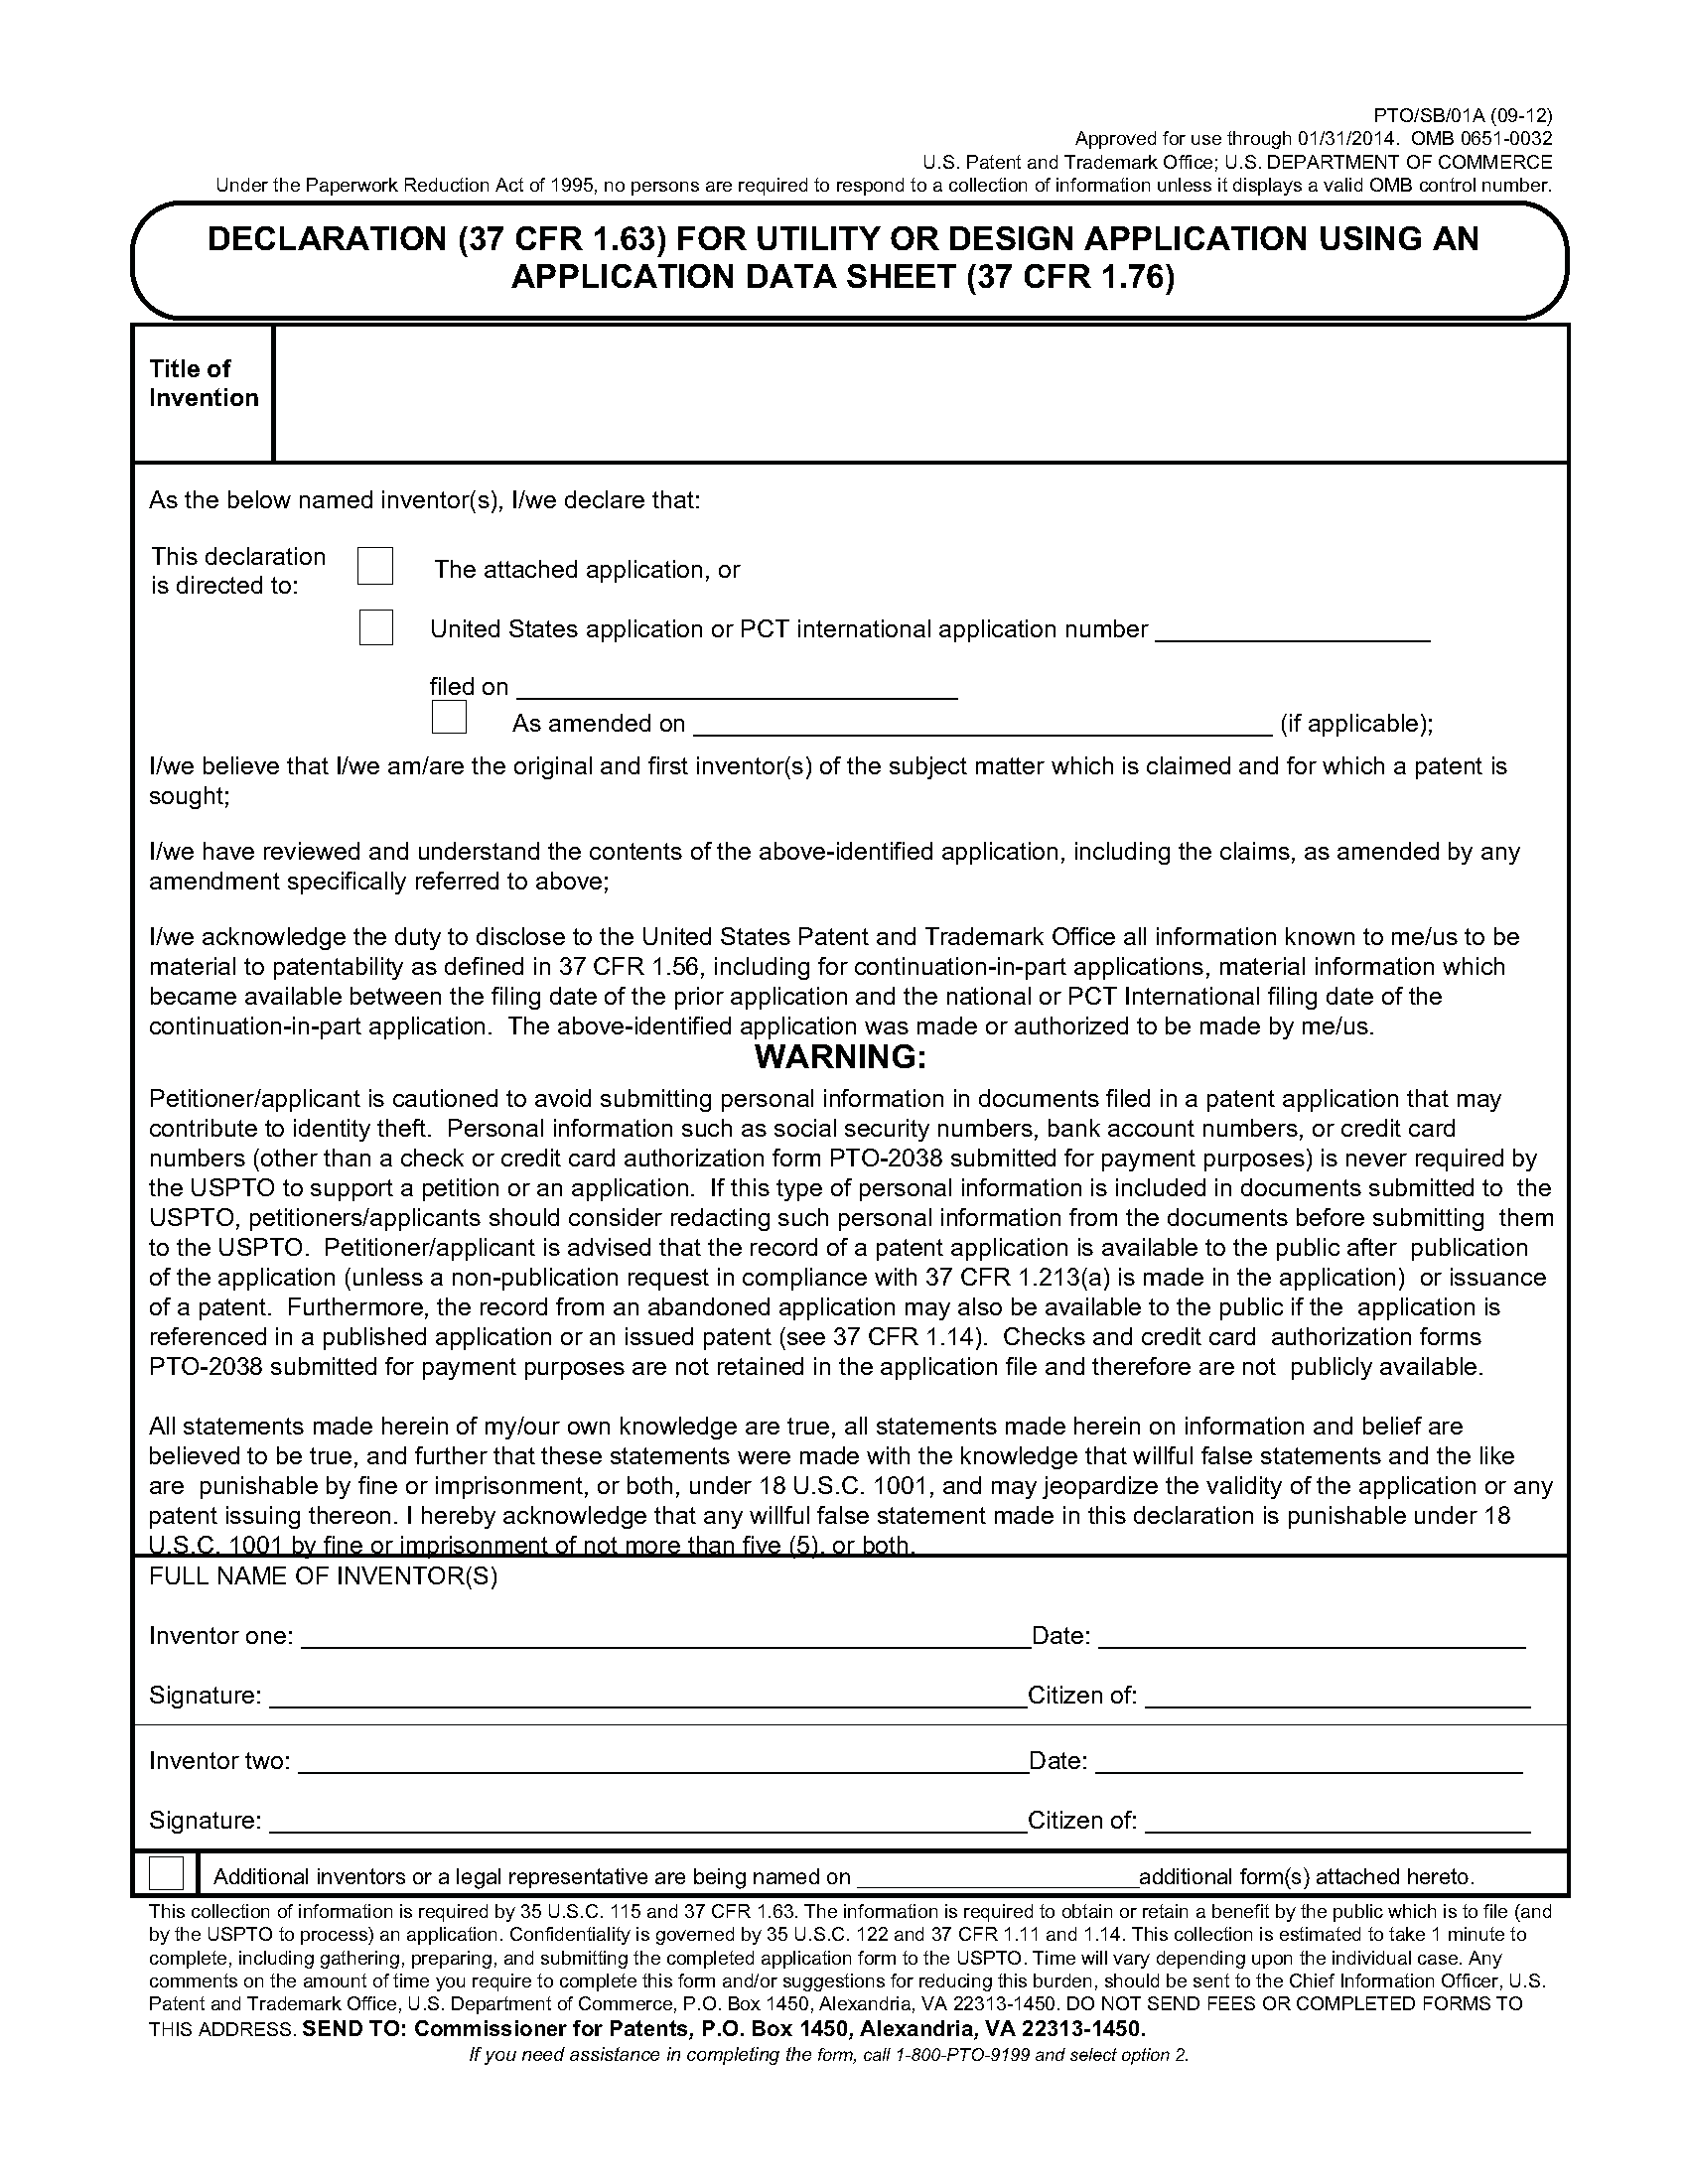 applicant data sheet aildoc productoseb co